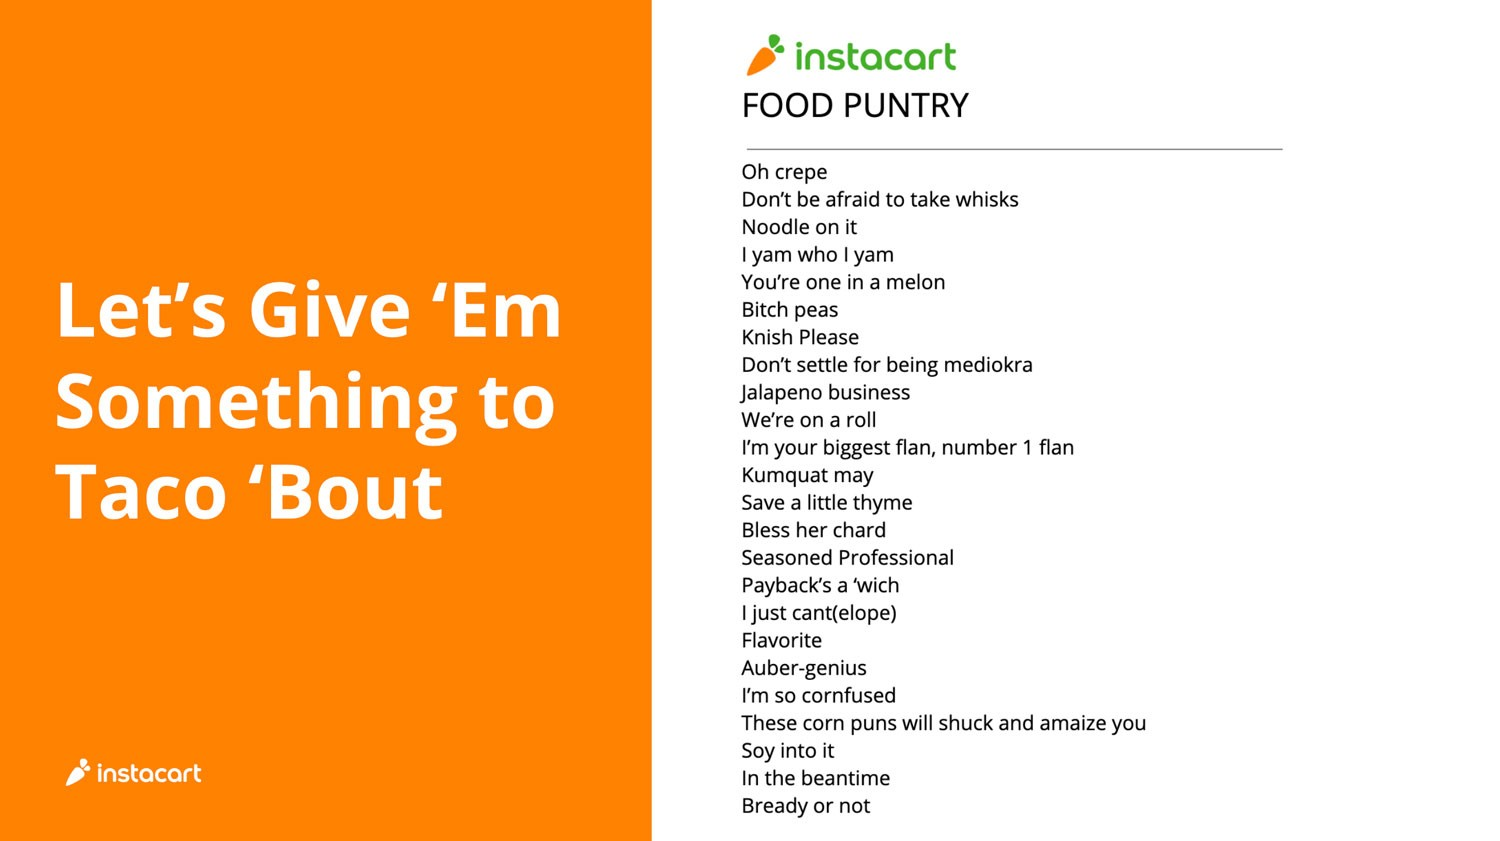 "Screenshot from Marta and Colleen's presentation deck, featuring list of ""Instacart Food Puntry"":  Oh crepe Don't be afraid to take whisks Noodle on it I yam who I yam You're one in a melon Bitch peas Knish please Don't settle for being mediokra Jalapeño business We're on a roll I'm your biggest flan, number 1 flan Kumquat may Save a little thyme Bless her chard Seasoned Professional Payback's a 'wich I just cant(elope) Flavorite Auber-genius I'm so cornfused These corn puns will shuck and amaize you Soy into it In the meantime Bready or not"